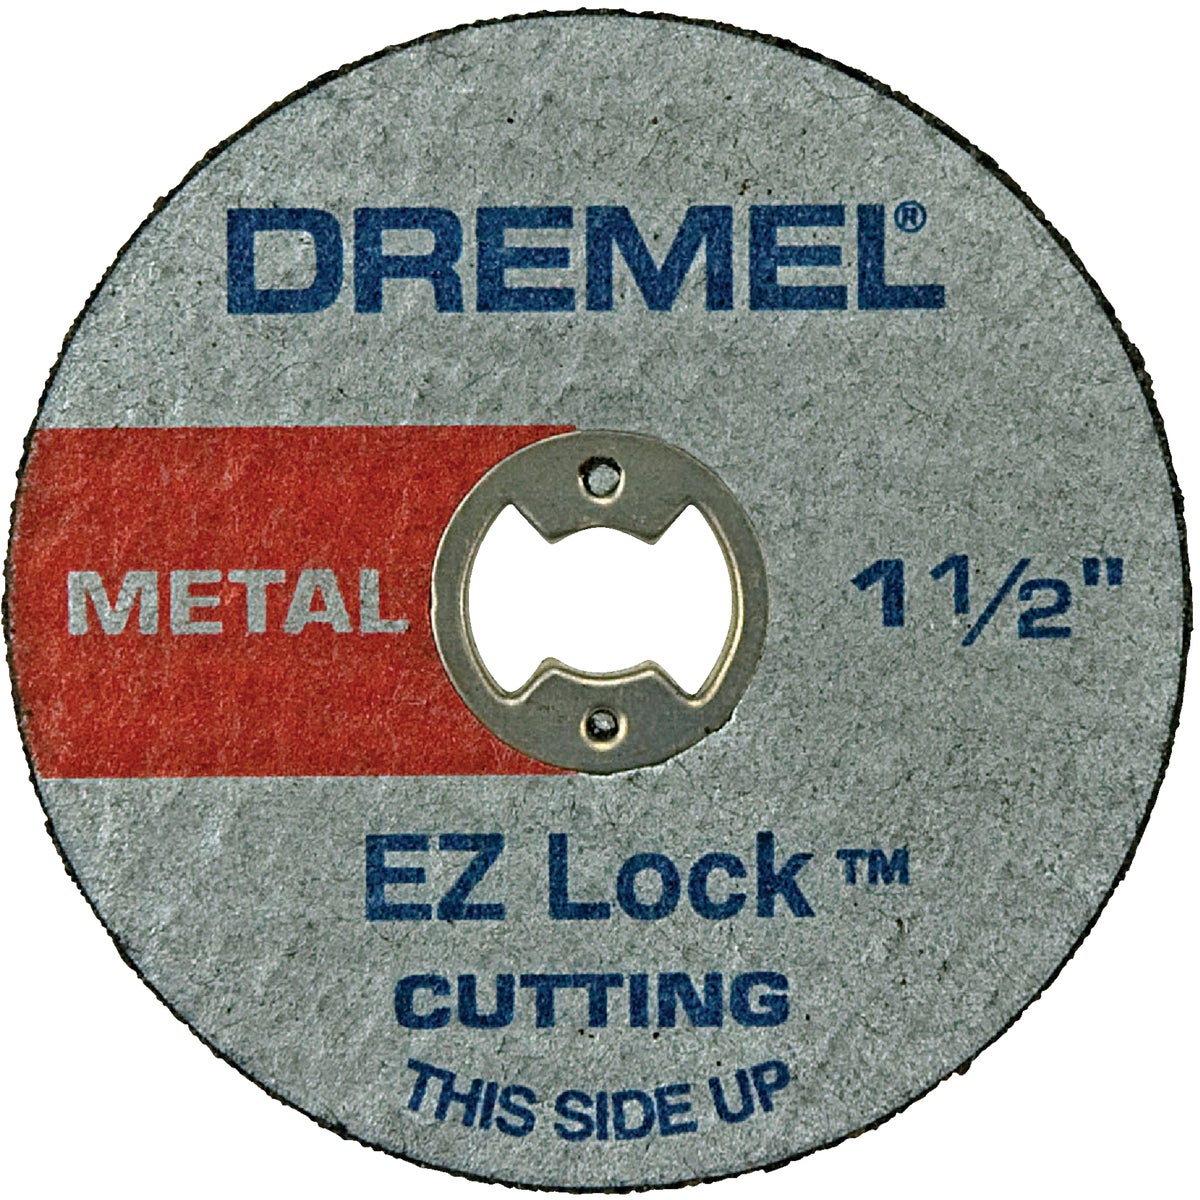 5PK CUT-OFF WHEEL - EZ456 by Dremel Mfg Co